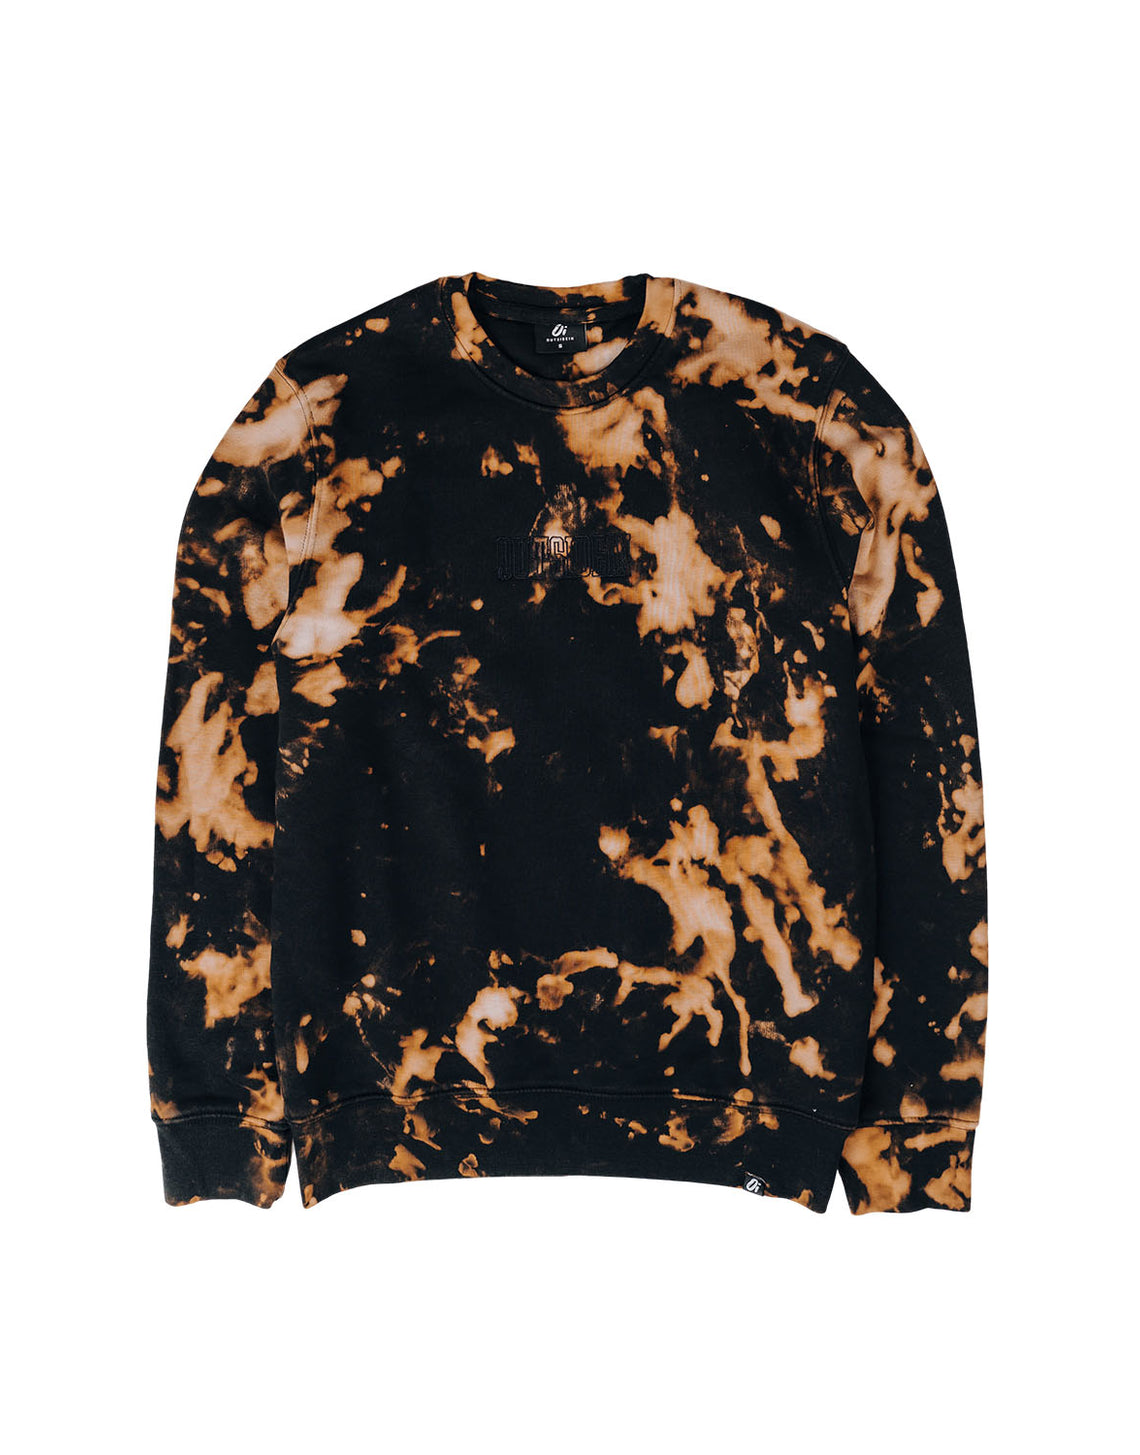 Black Tie Dye Sweater - OutsideIn